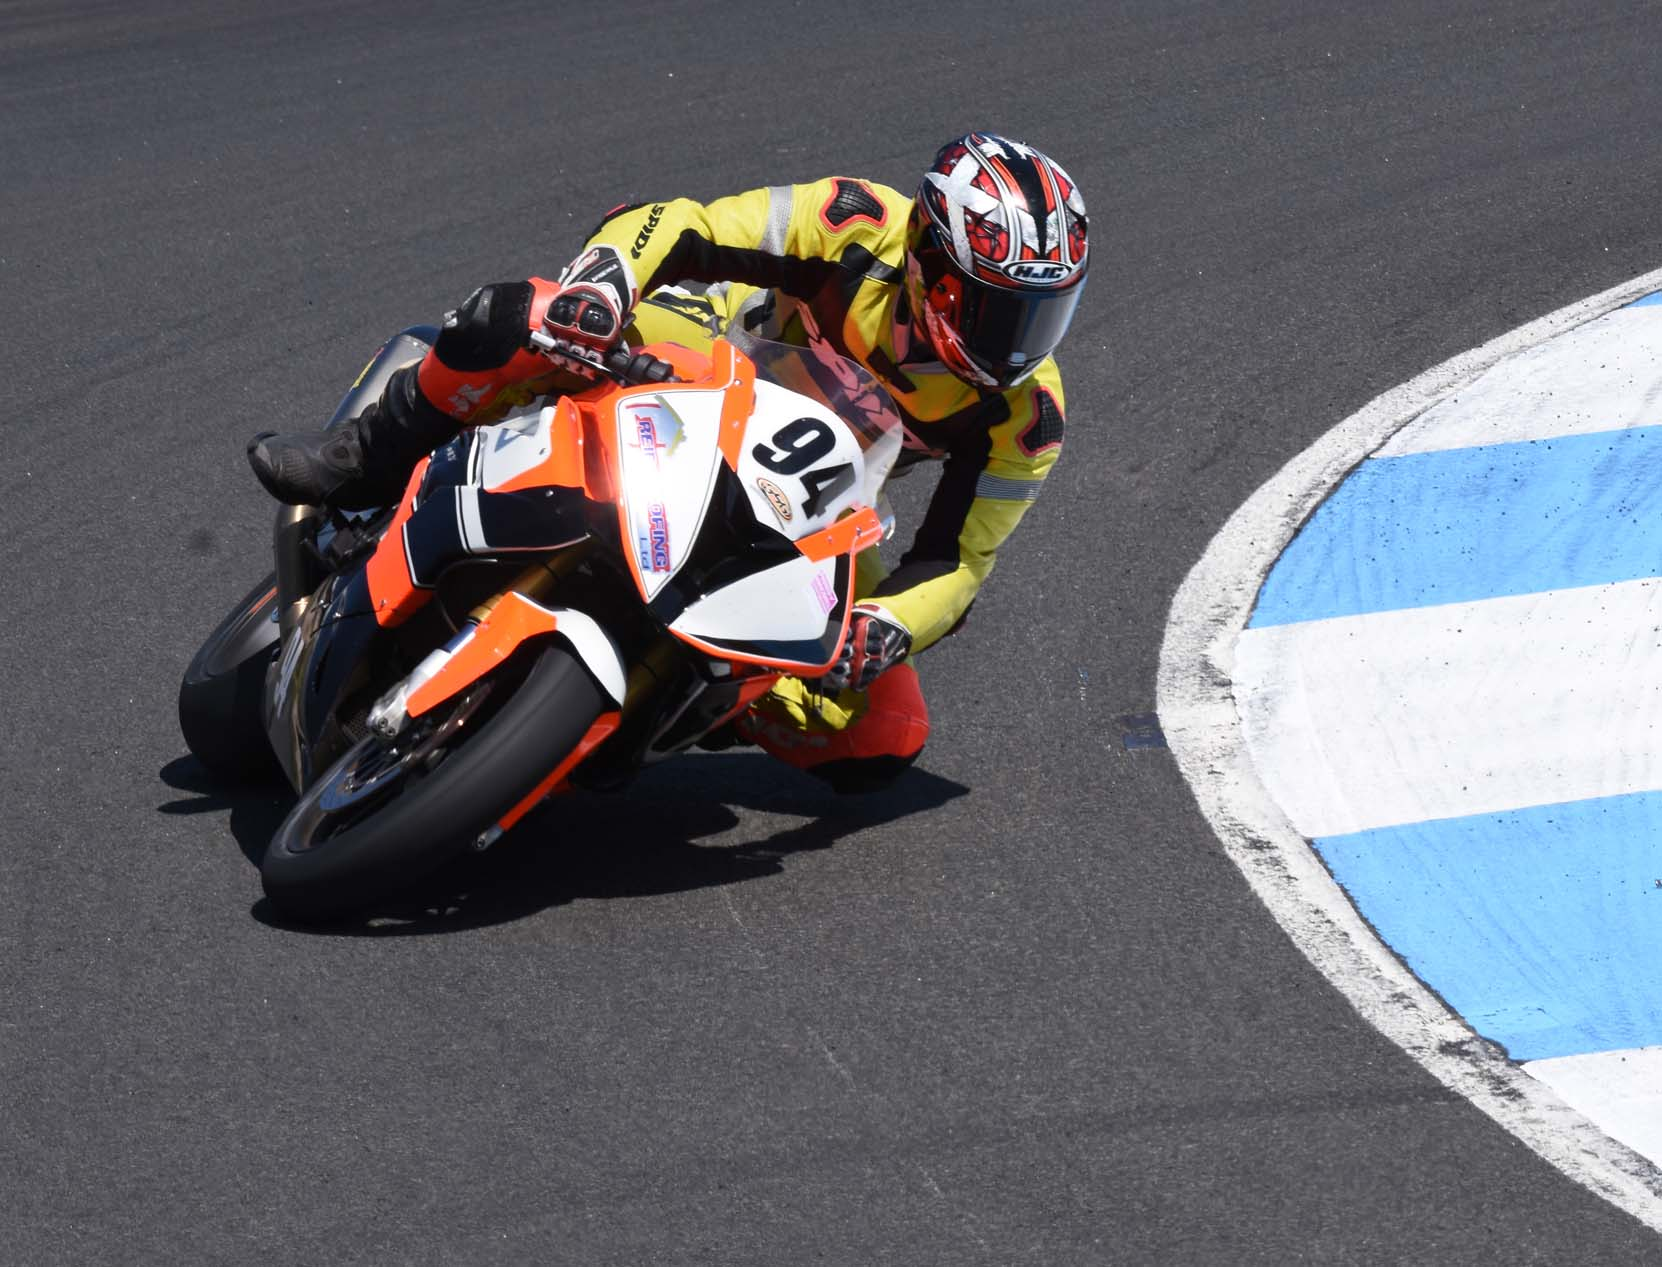 Greg Gilfillan swept Saturday's big bike races o the ex-Keith Amor BMW...